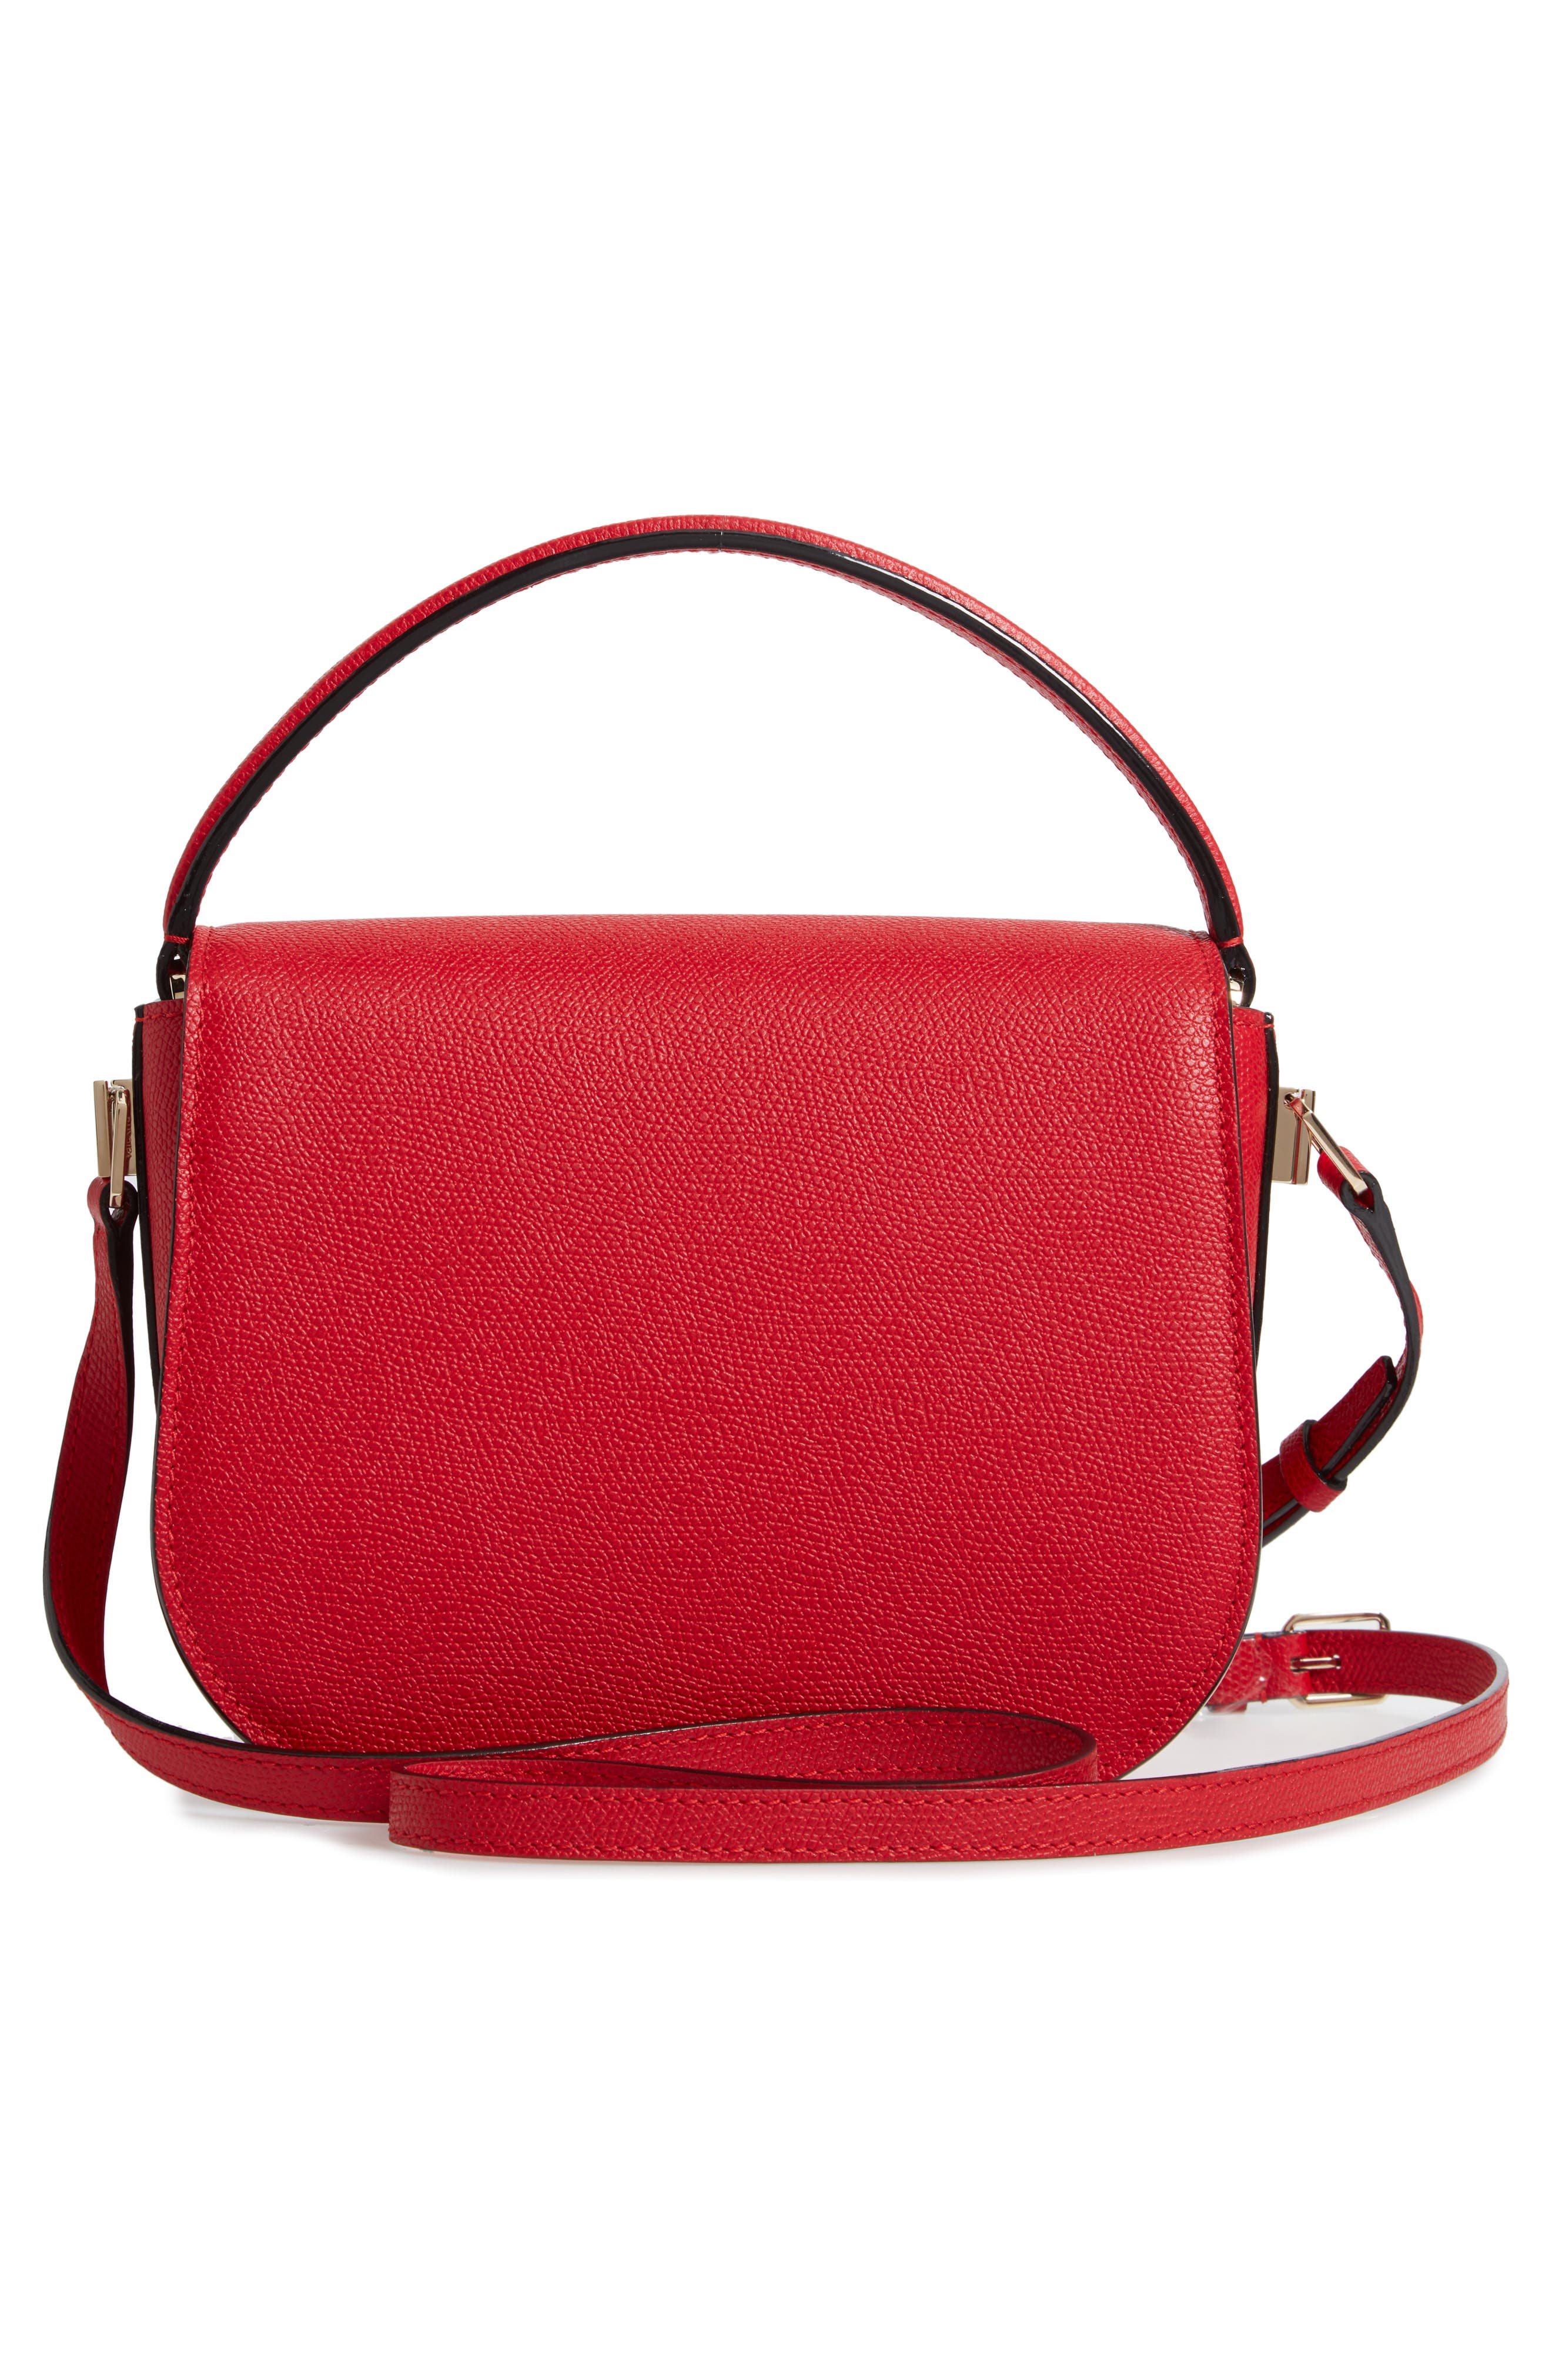 Iside Leather Top Handle Bag,                             Alternate thumbnail 3, color,                             RED